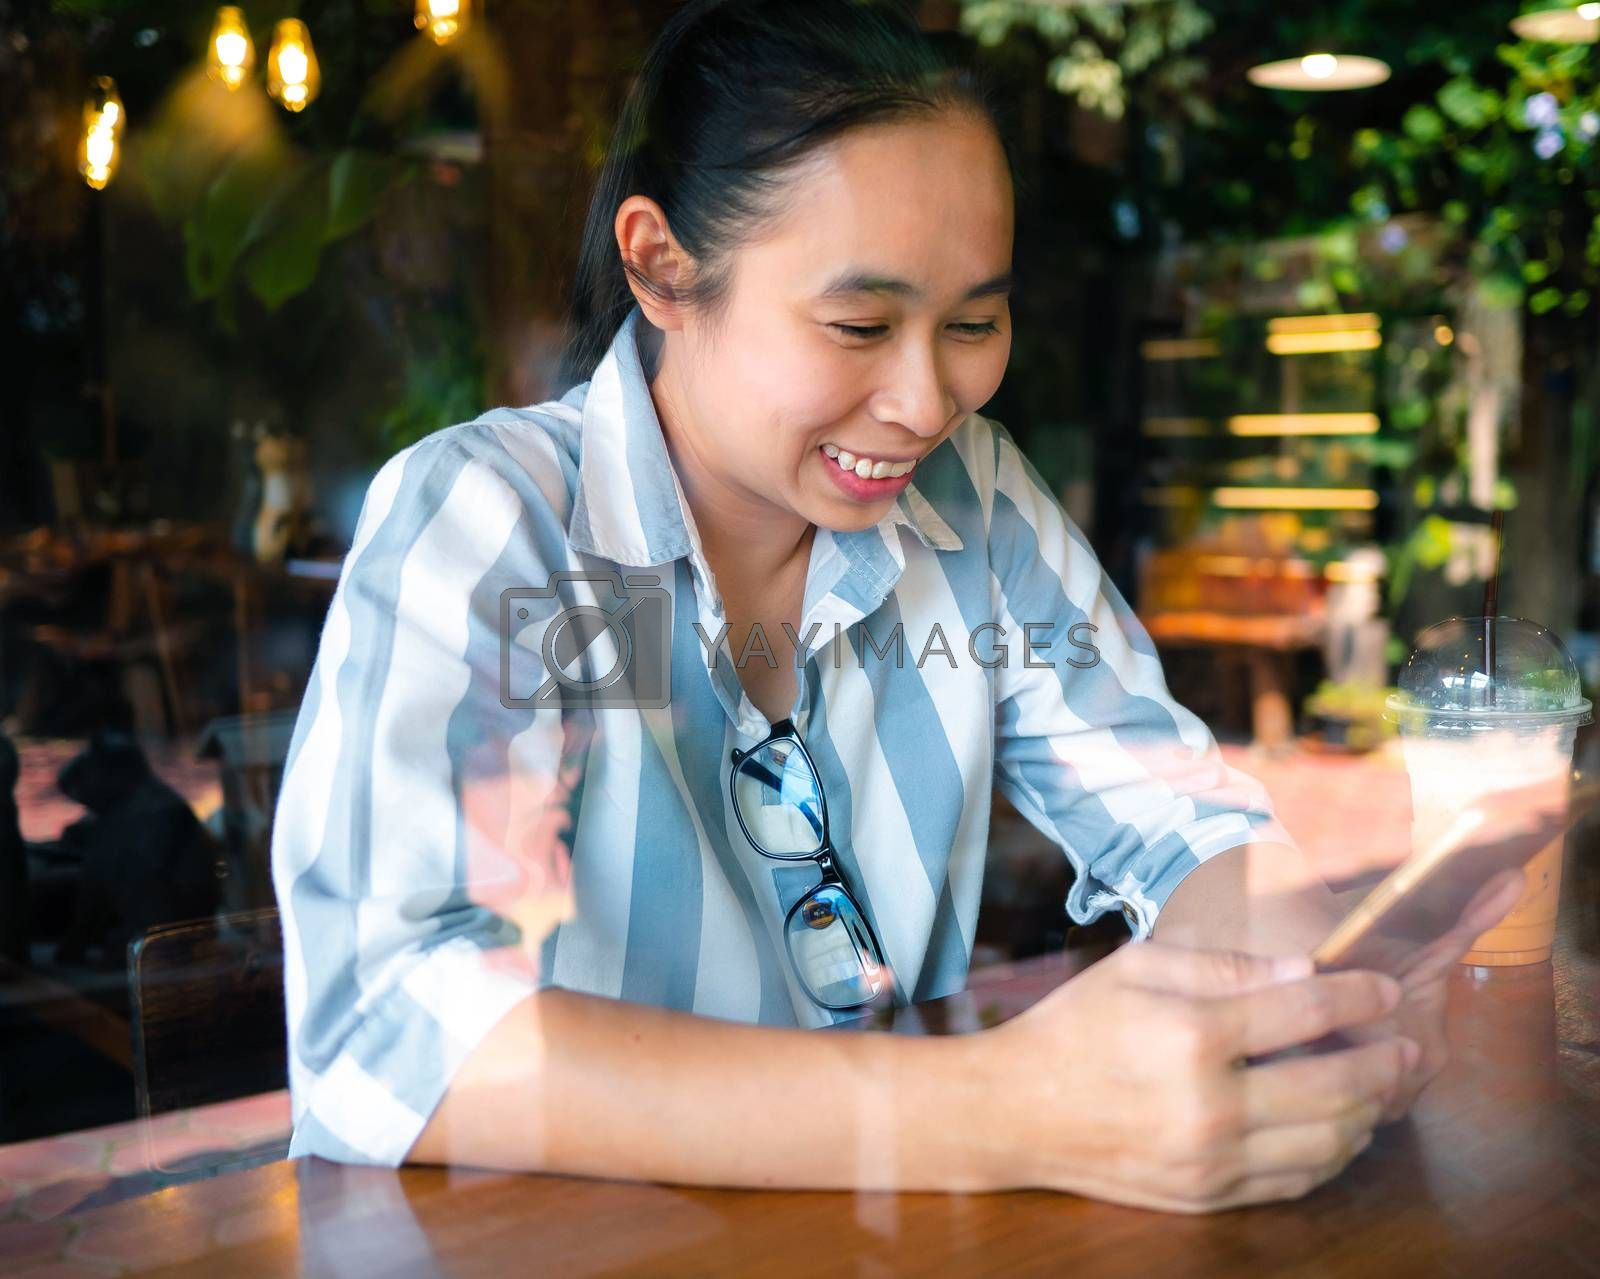 Cheerful business Asian young woman sitting on wooden chair and using smartphone at coffee cafe on weekend, happy and smiley face. by TEERASAK